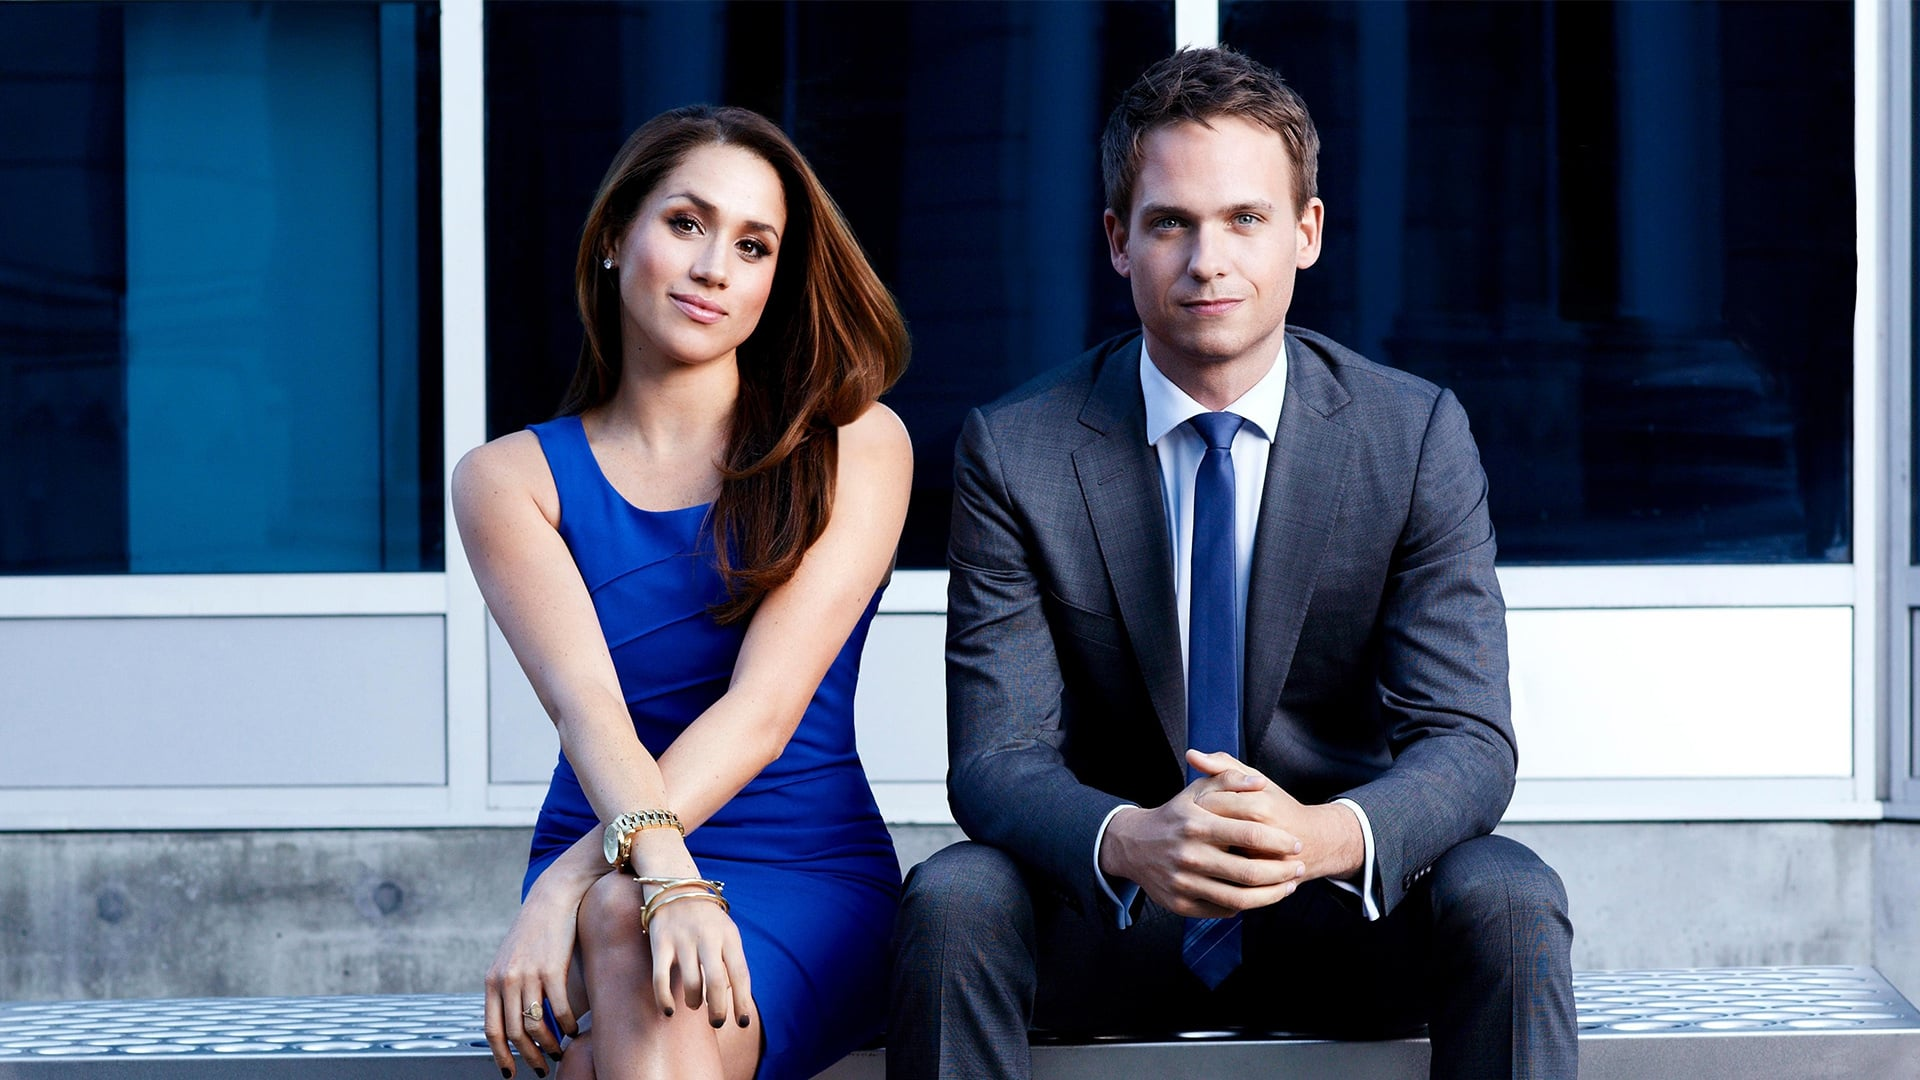 Patrick Adams with Meghan Markle picture